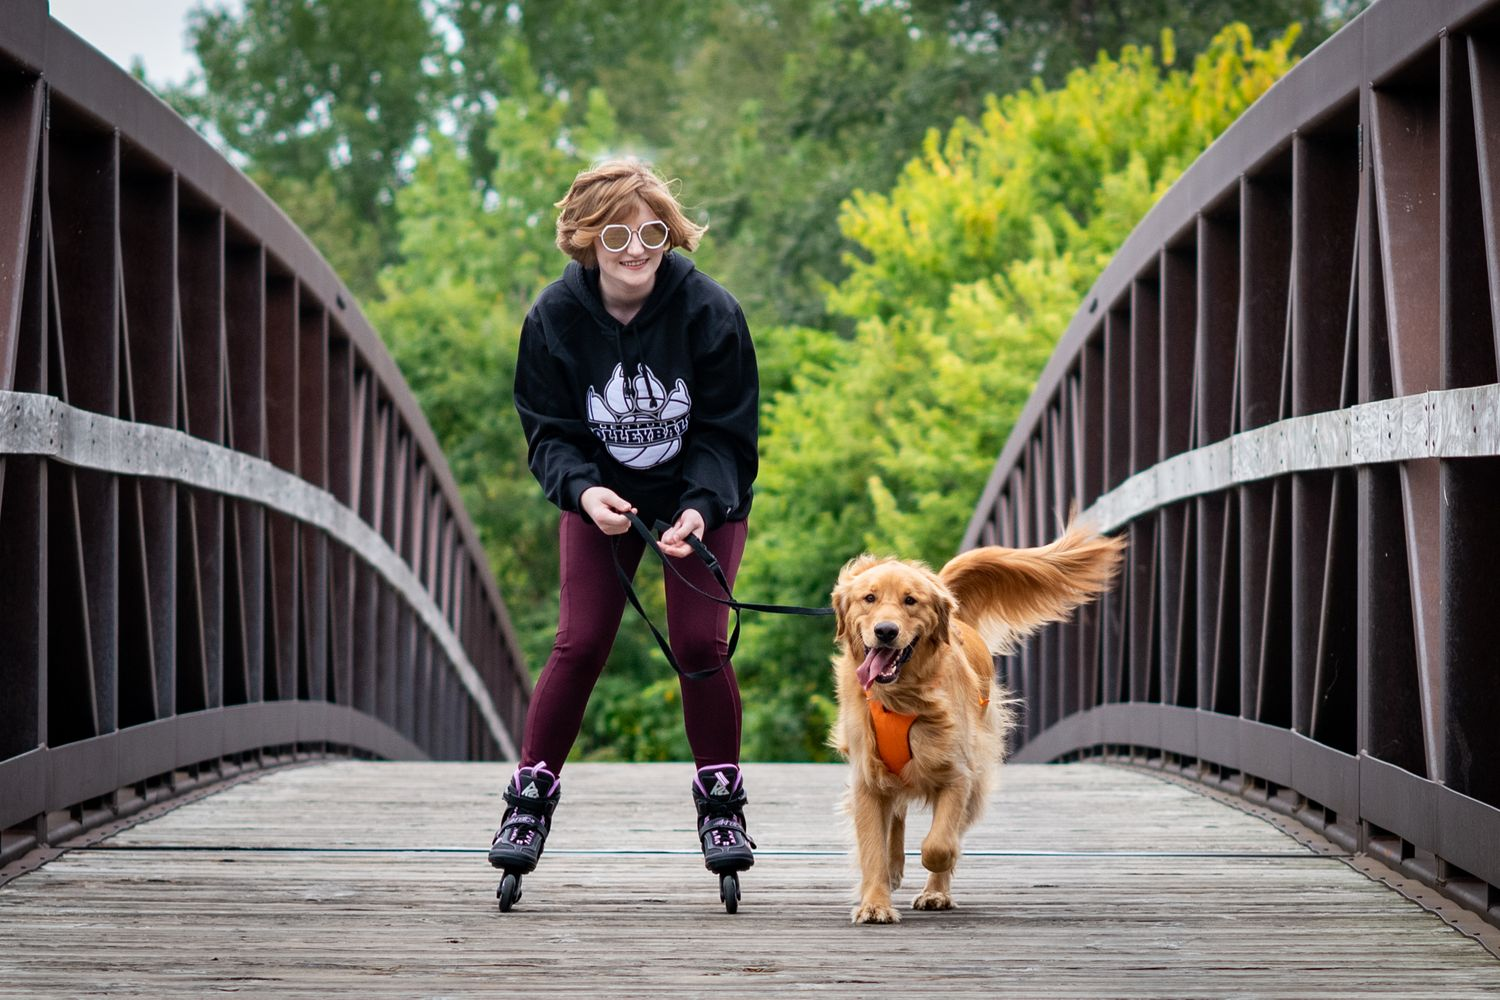 Senior Photo Rollerbladding with Golden Retriever